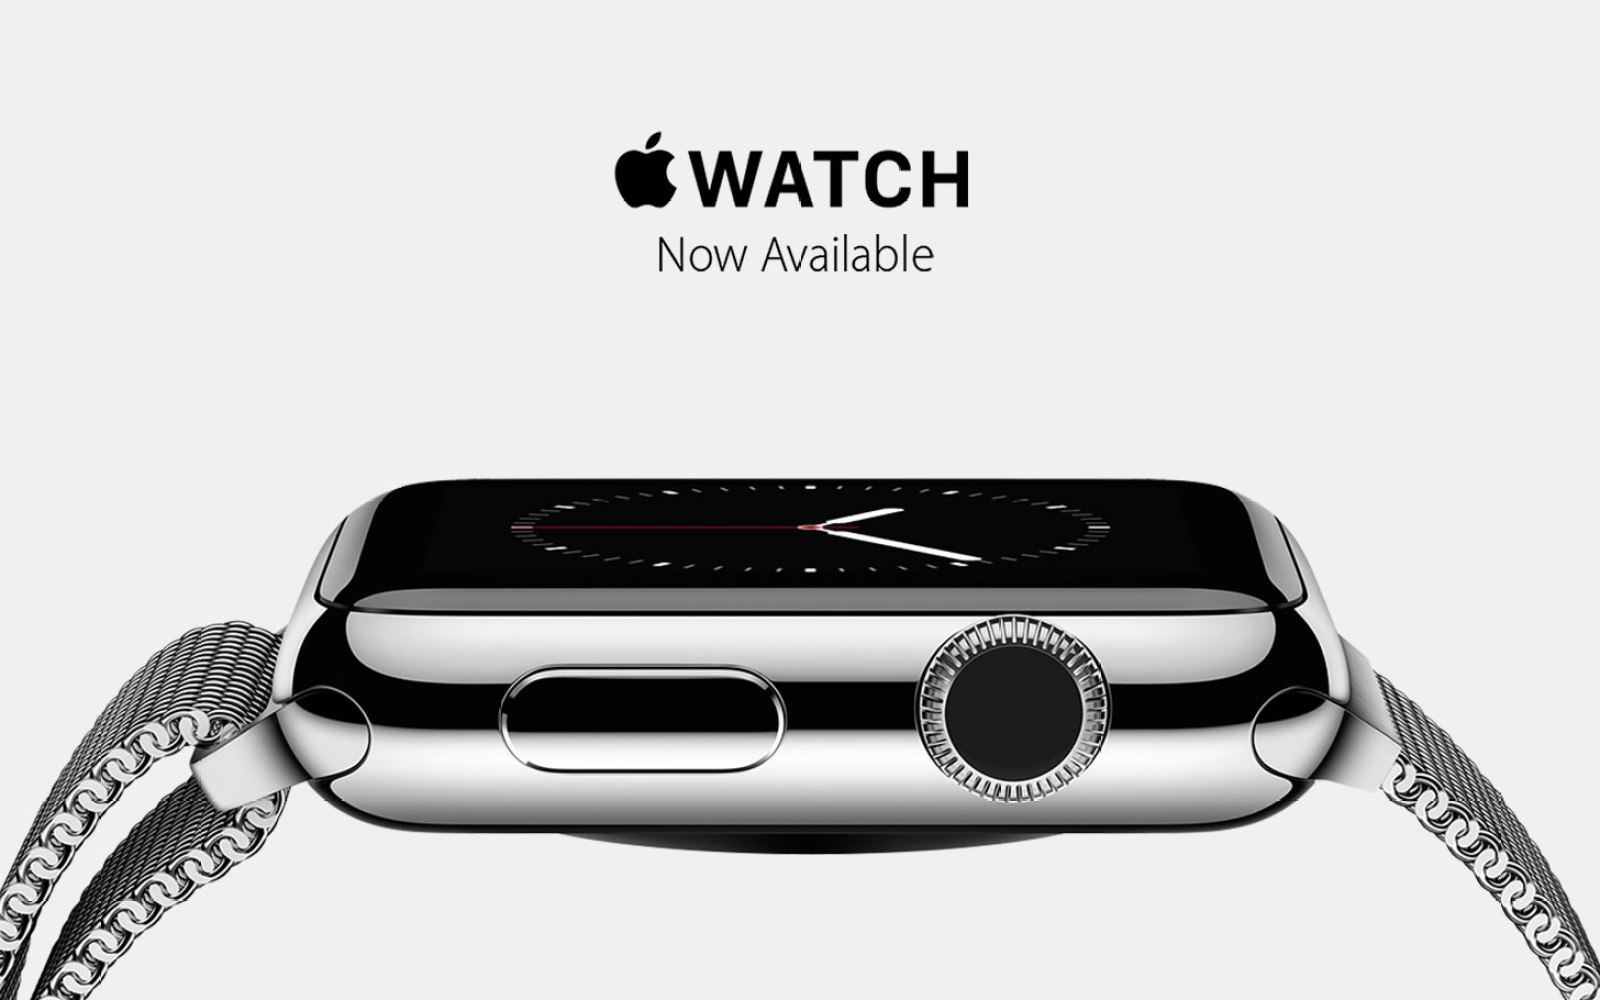 Target ad leak reveals planned Apple Watch discount for iPhone purchasers